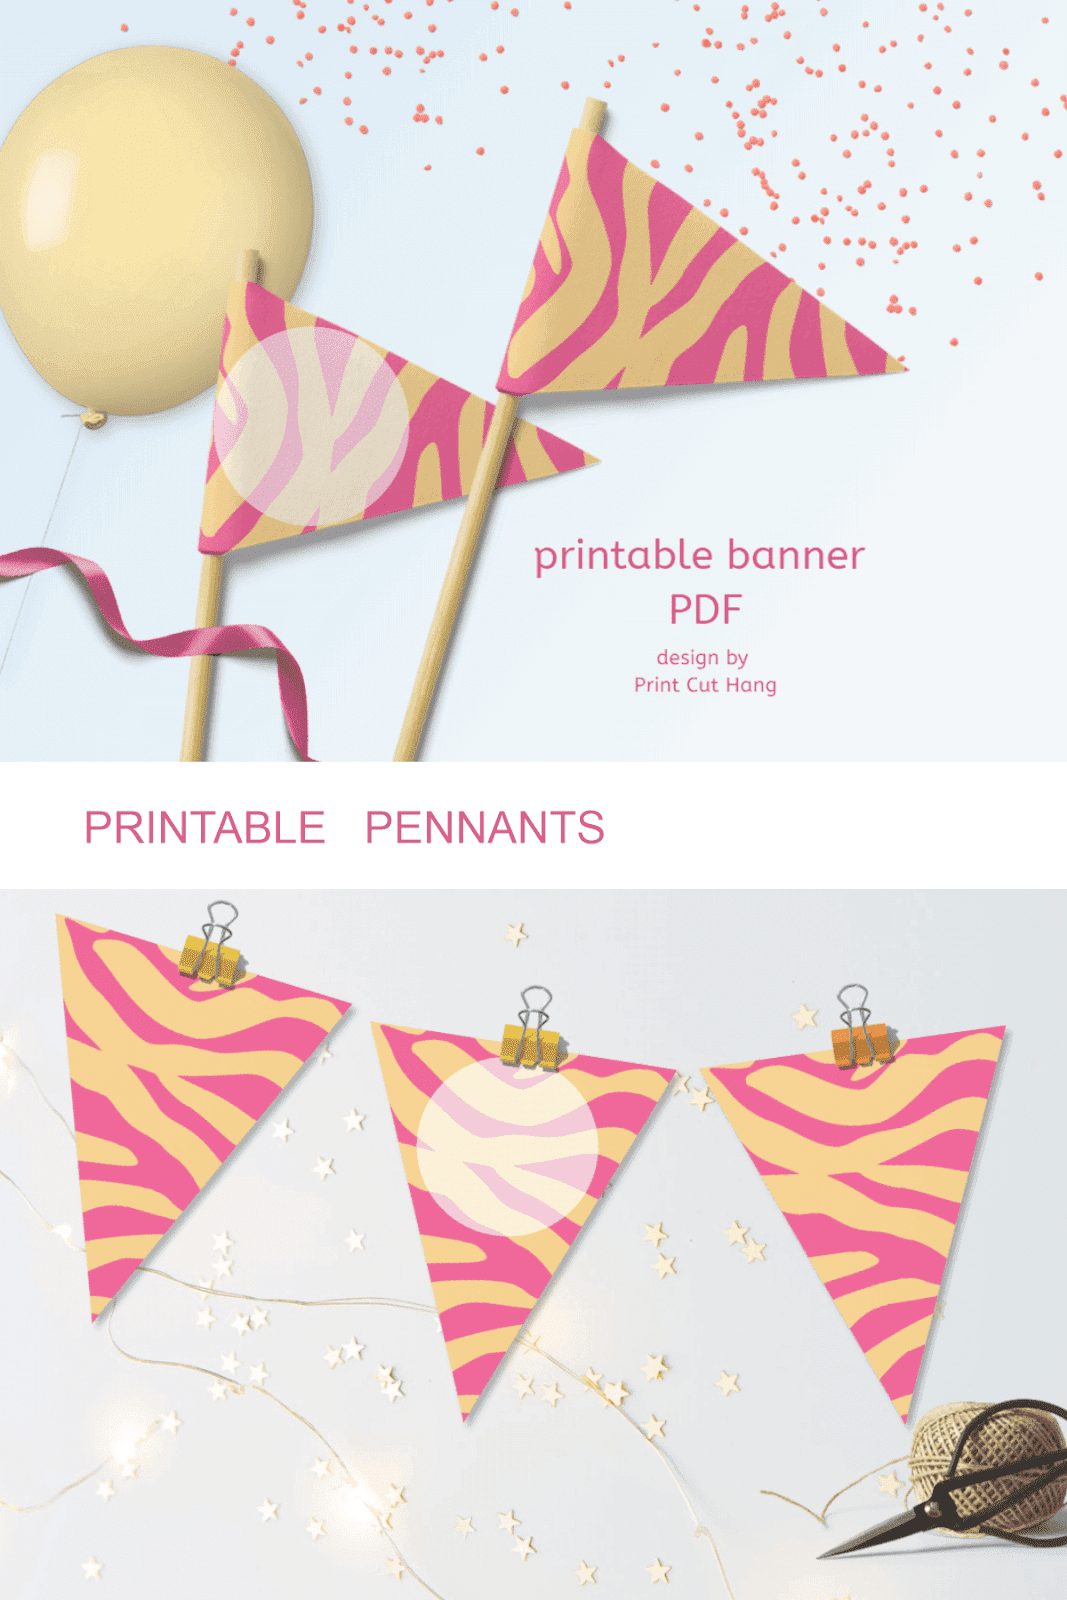 ZEBRA PENNANTS PINK ORANGE